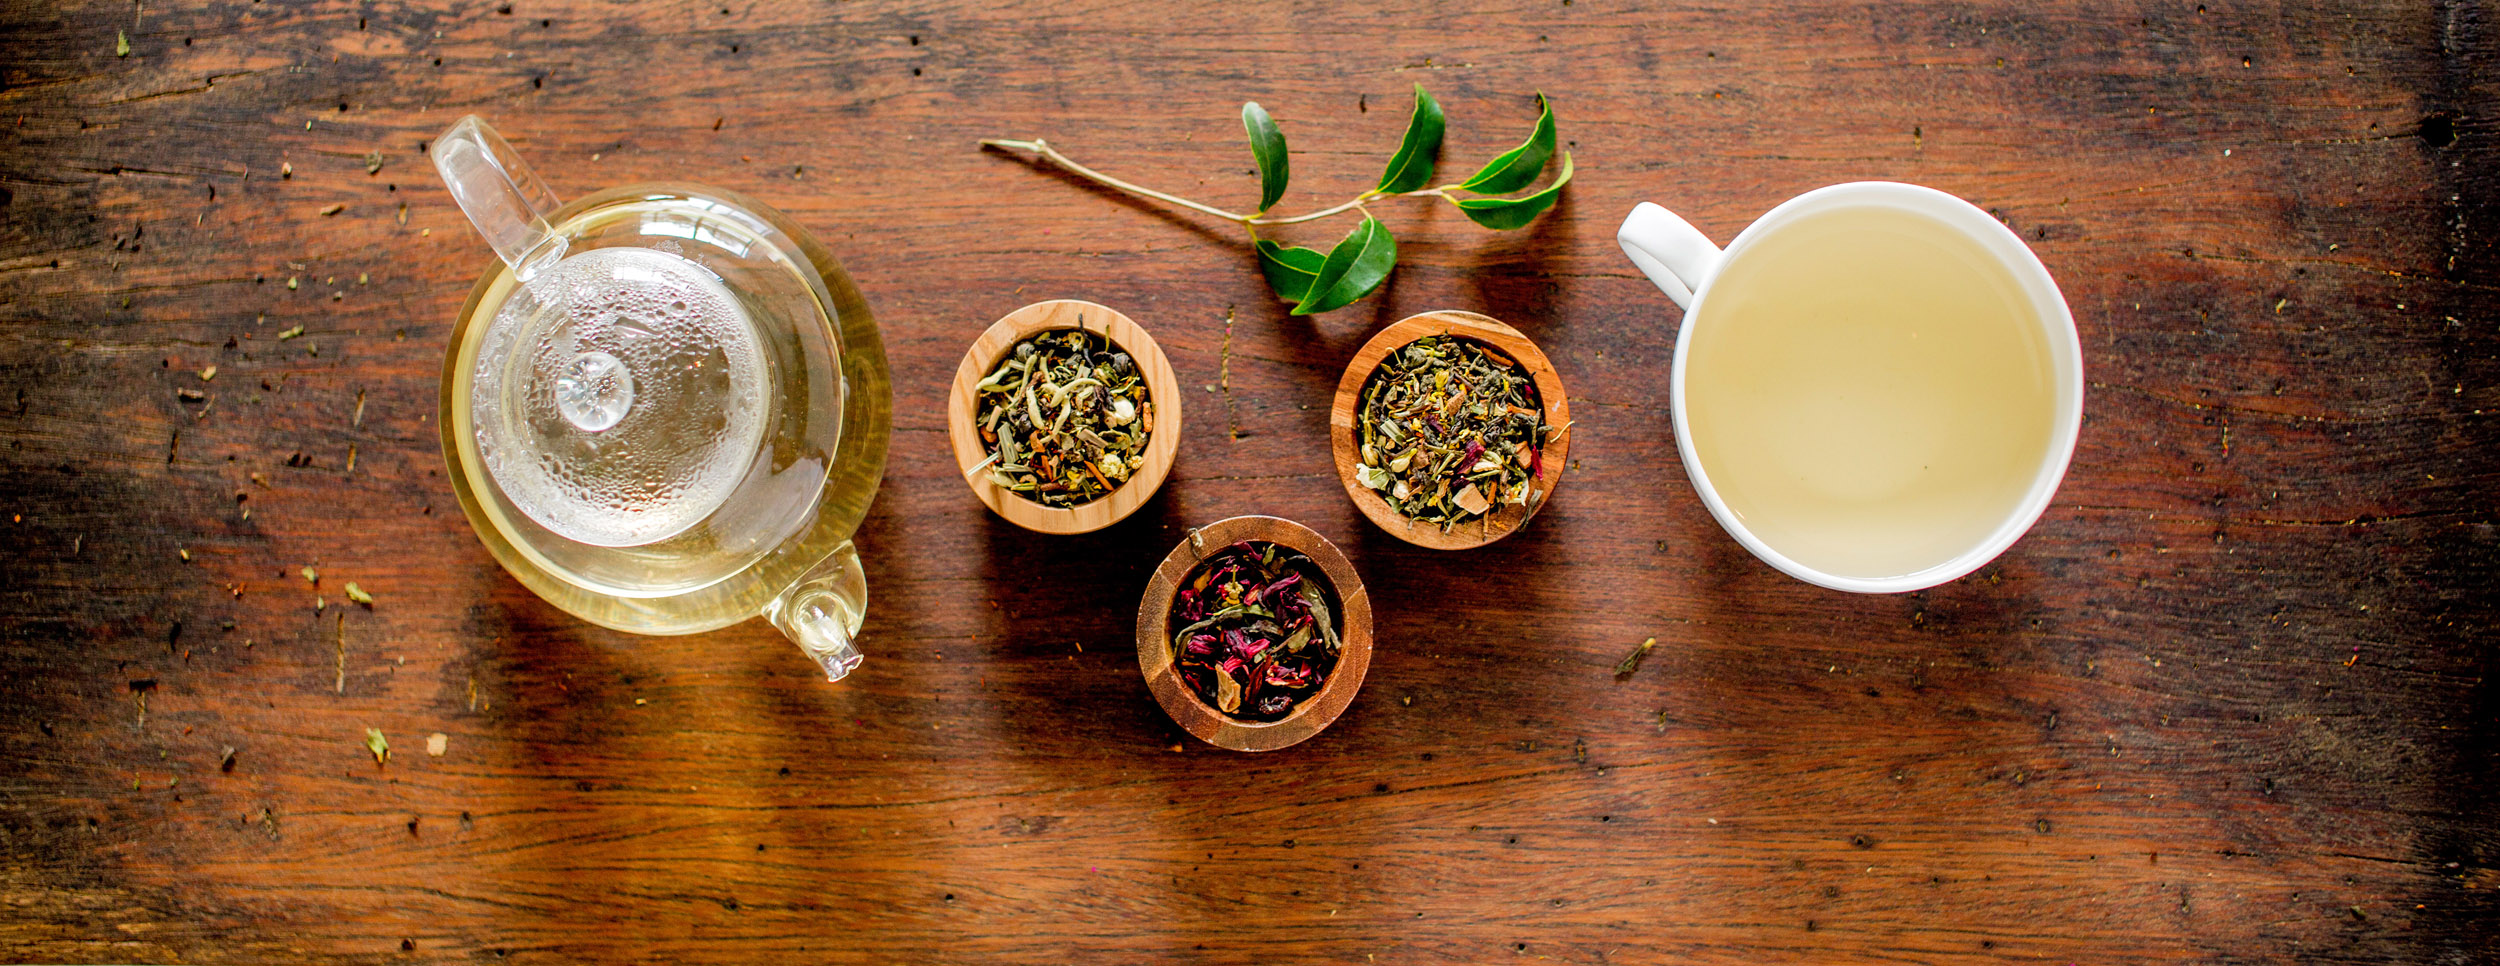 product-photo-shoot-tea.jpg